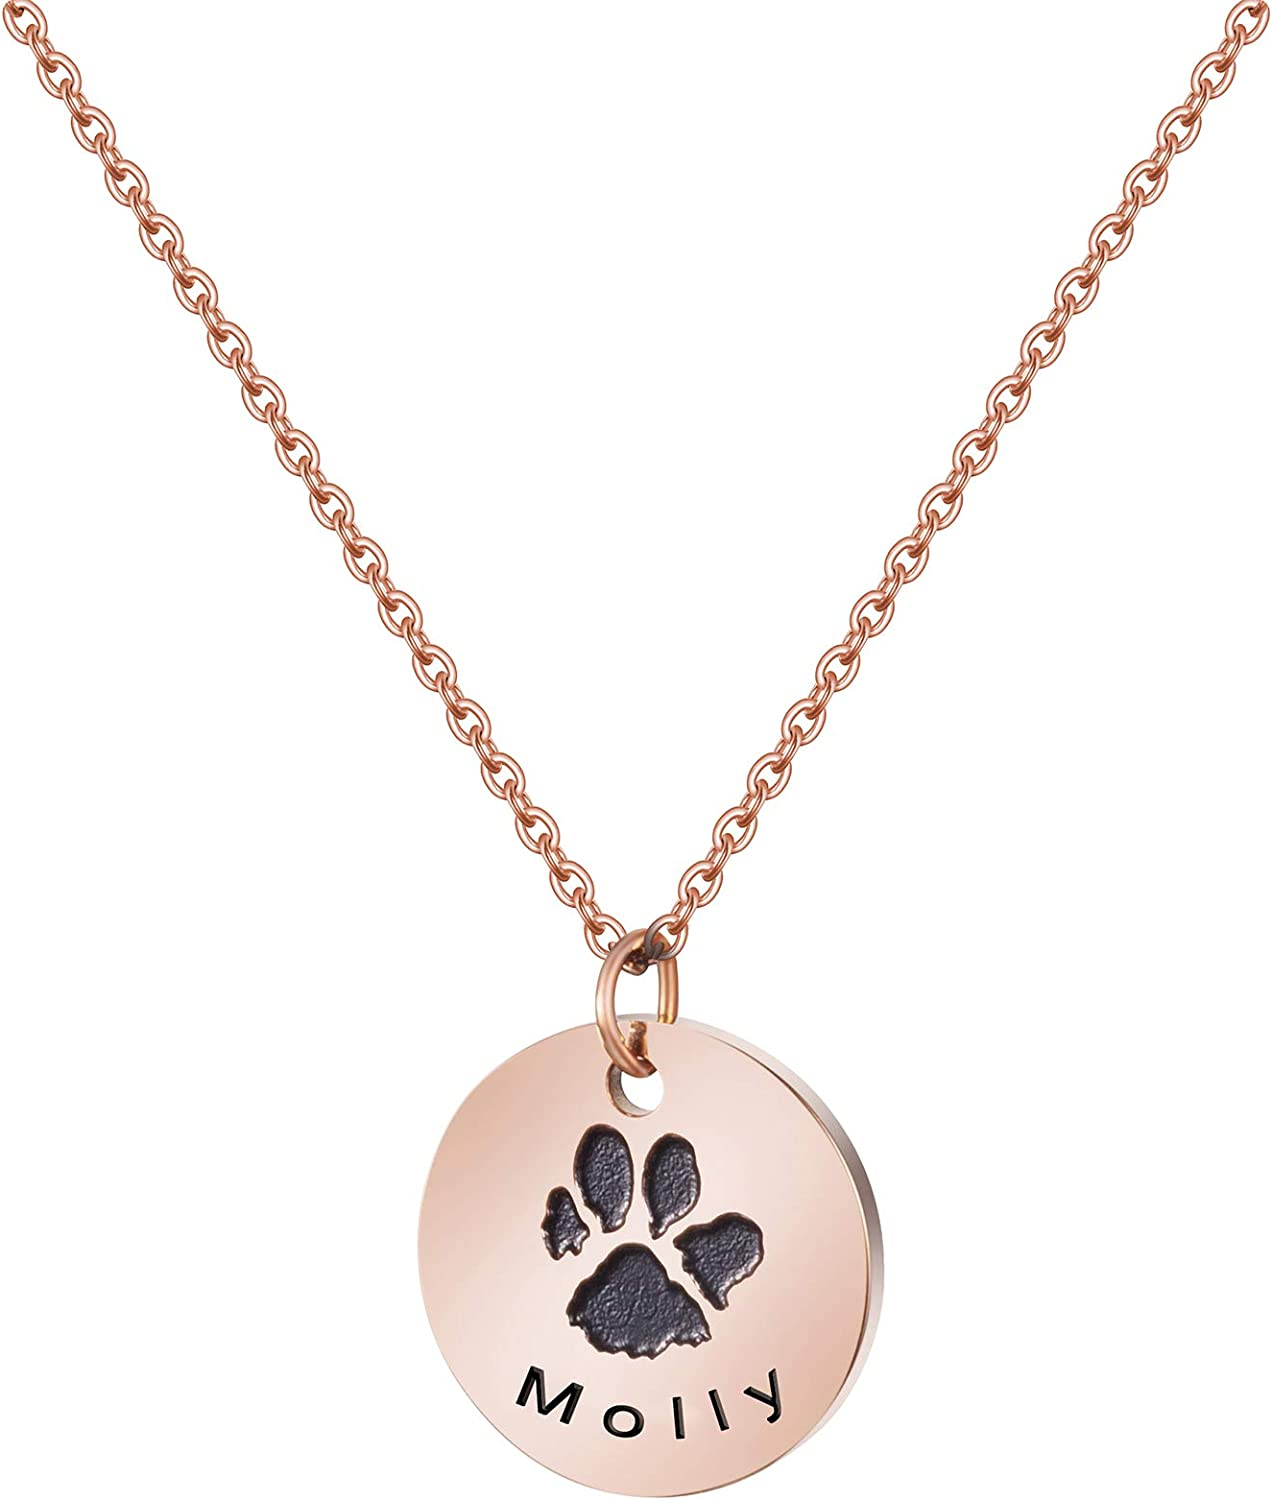 Joycuff Pet Memorial Name Necklace Personalized Rose Gold Dog Pawprint Necklace Sympathy Gifts for a Grieving Pet Owner Remembrance Jewelry for Pet Lovers